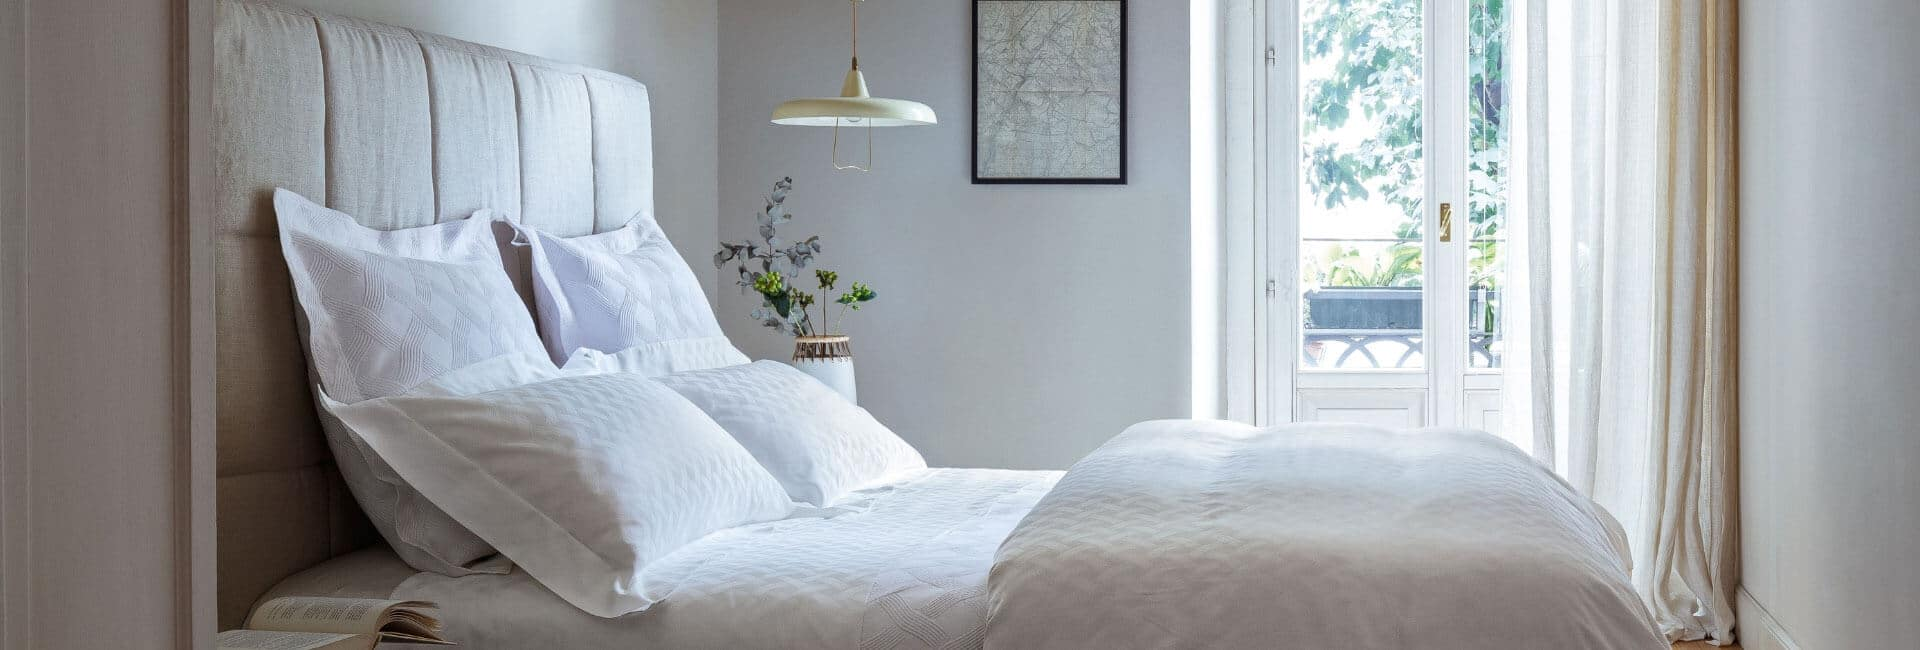 Frette bedding photo